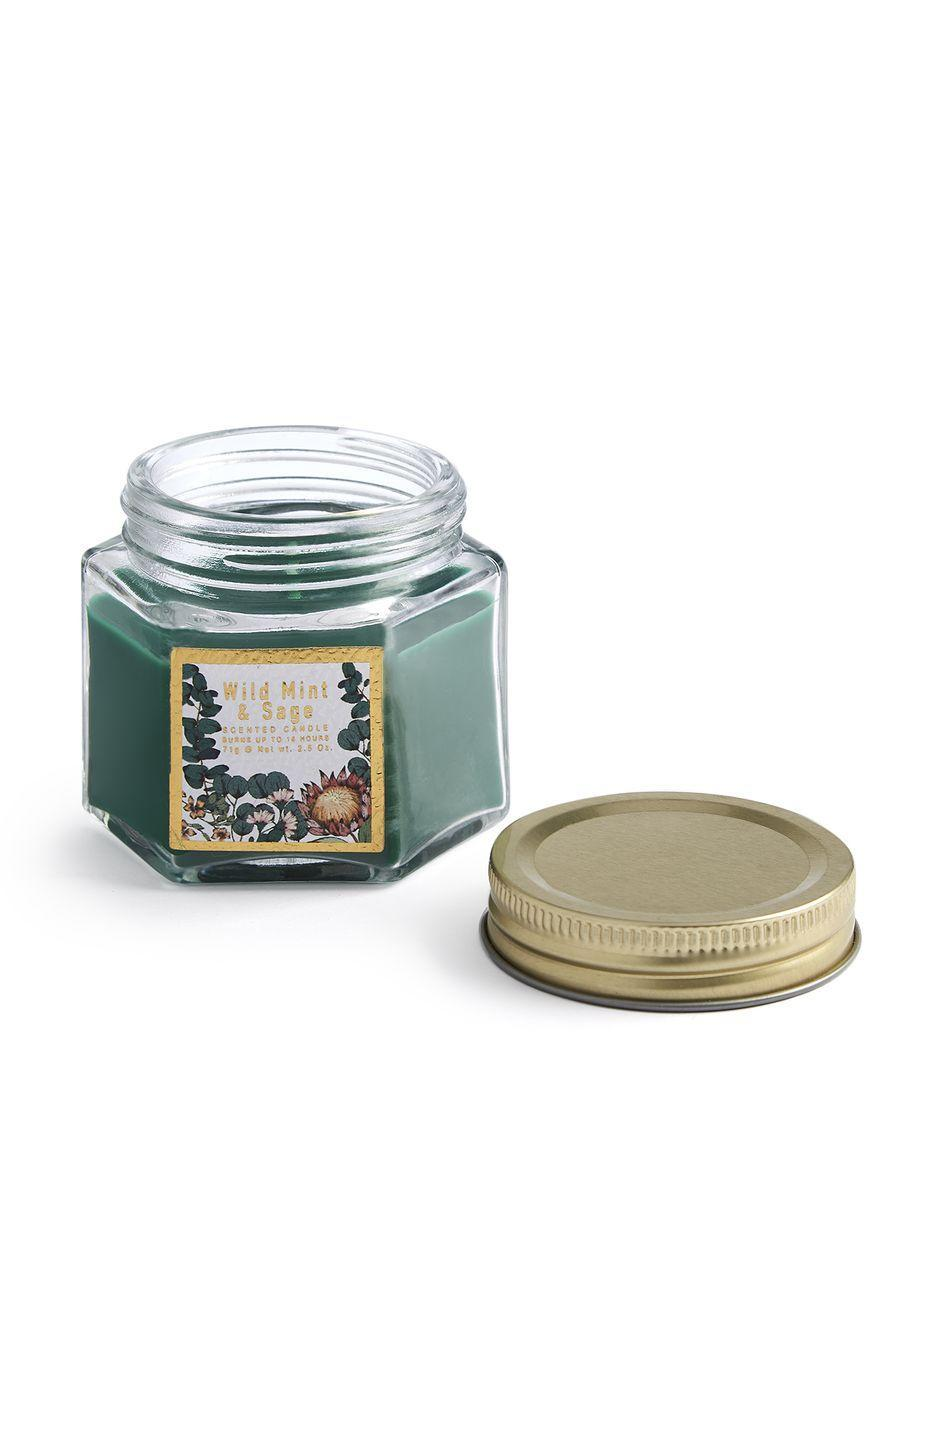 <p>Wild mint and sage candle, £1.00</p>